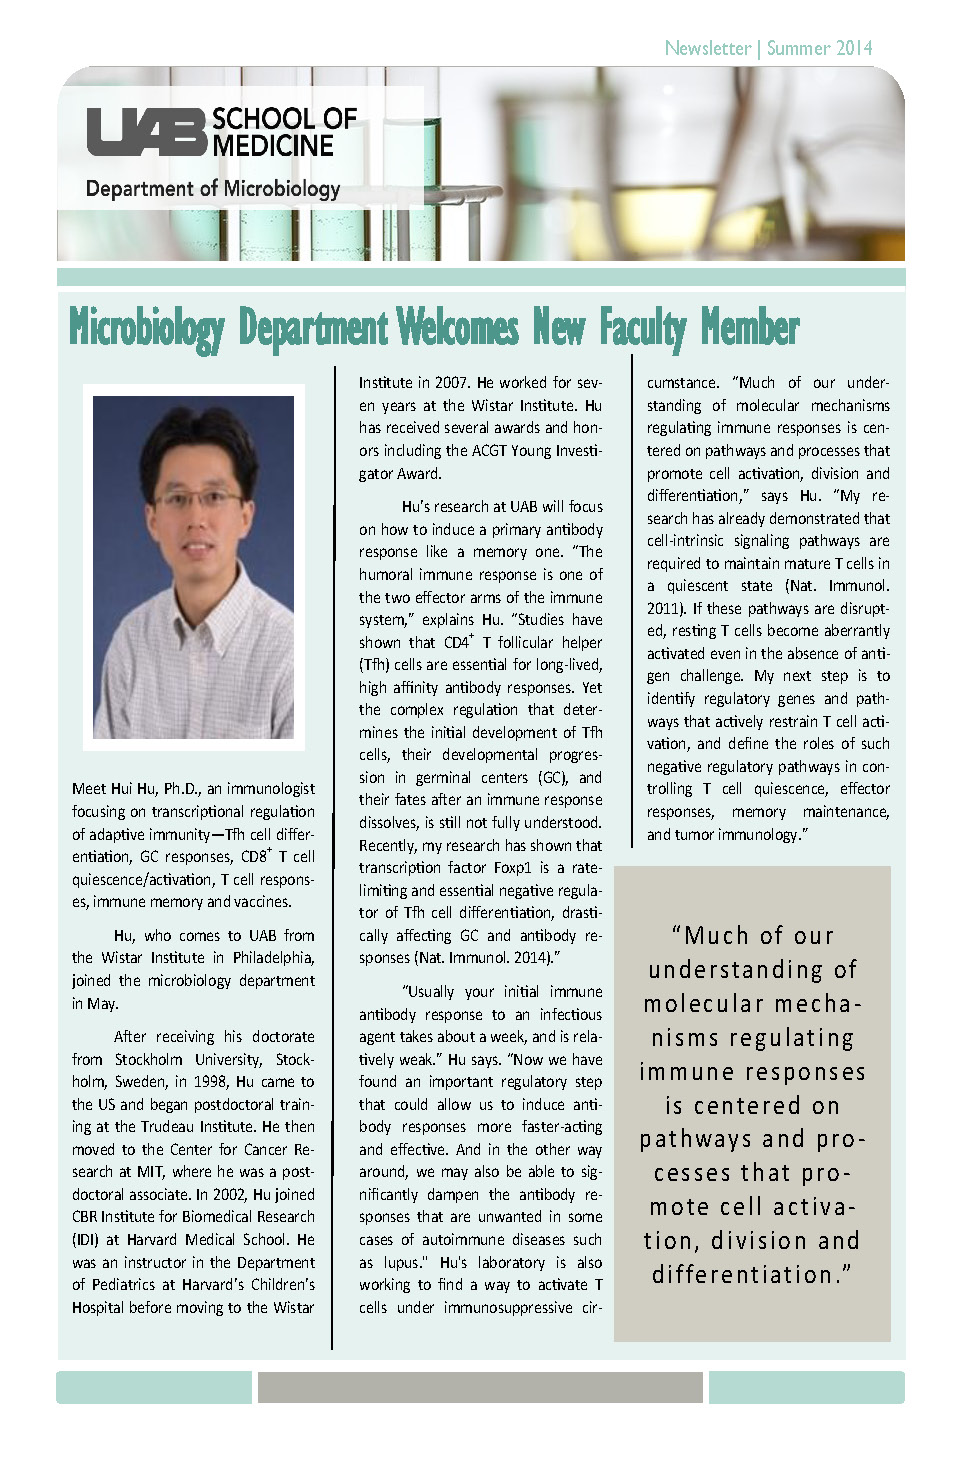 Micro Newsletter Summer 2014 Page 1